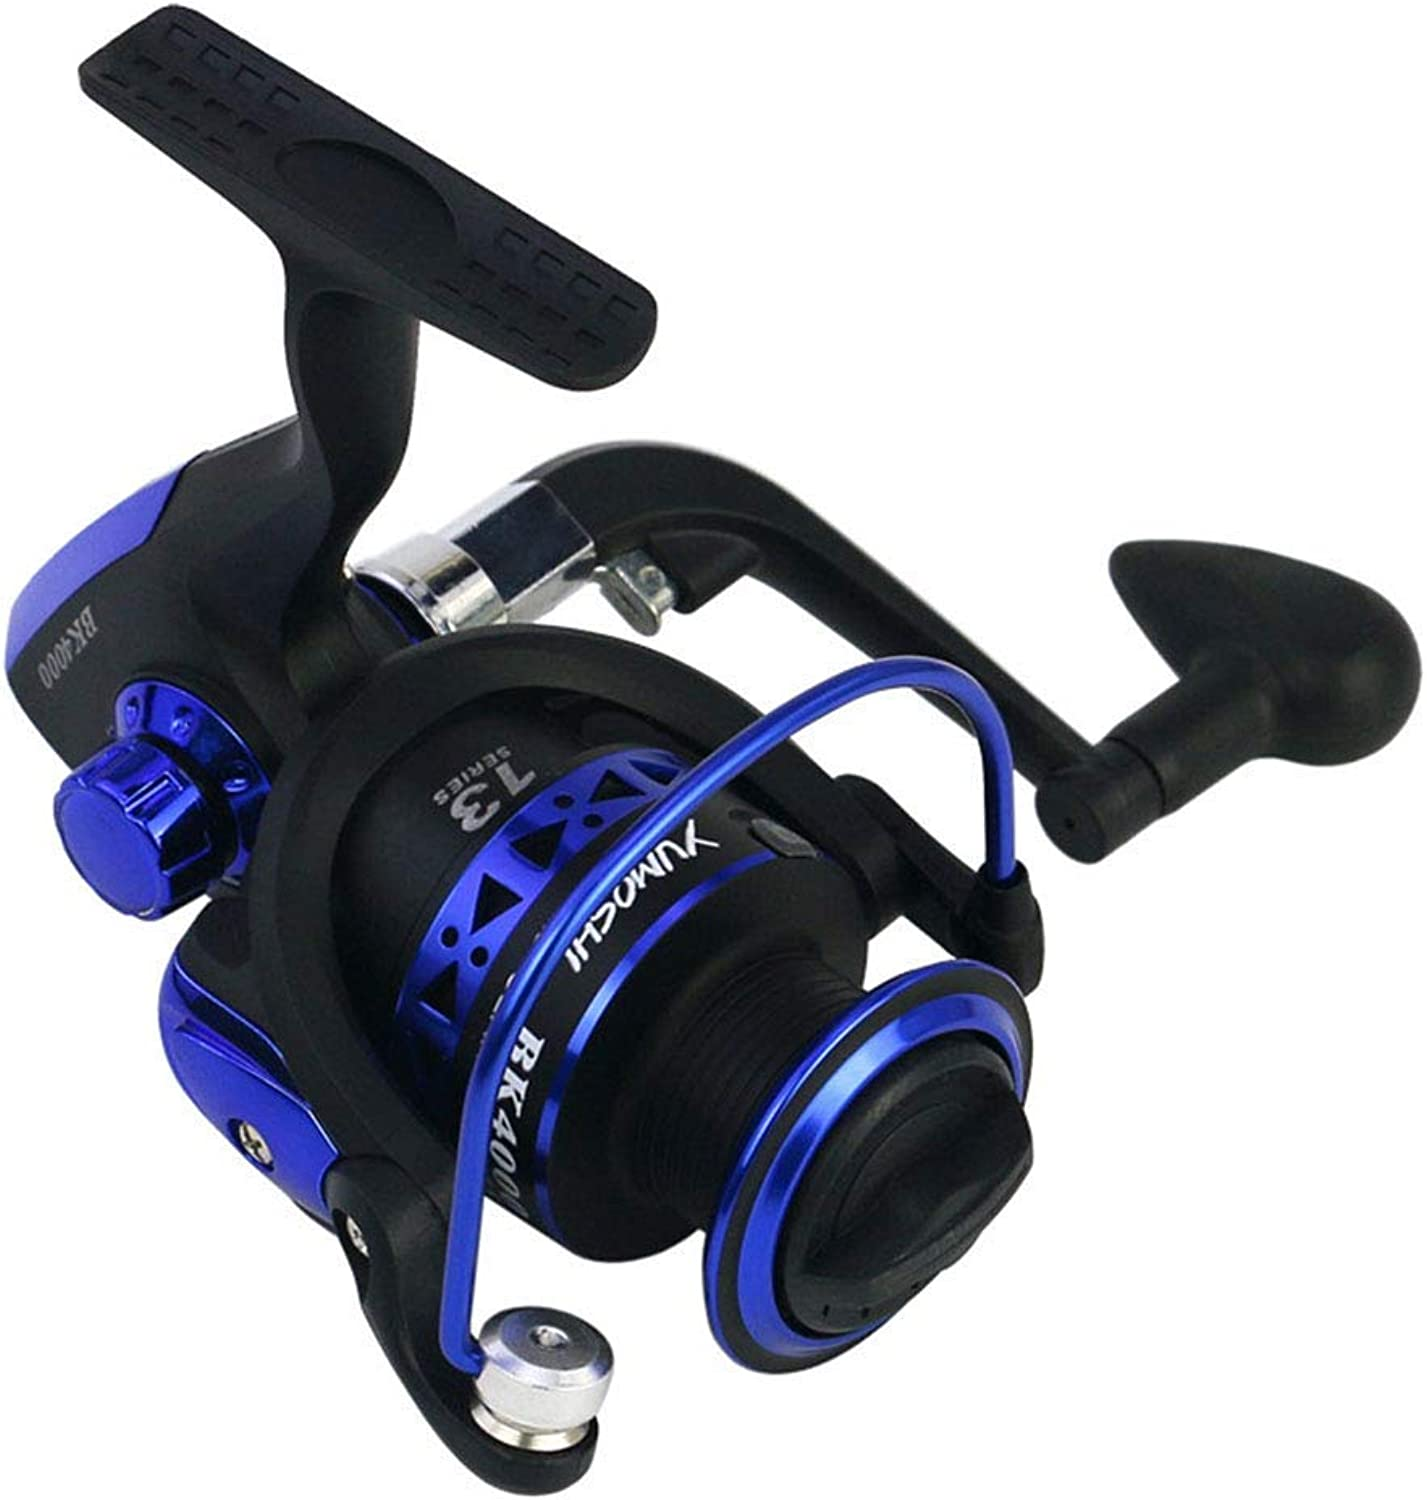 Fishing Wheel 13 Bb 10007000 Series 5.1 1 Speed Reatio Spinning Fishing Reel Interchanged Left Right Hand Wheel,7000model